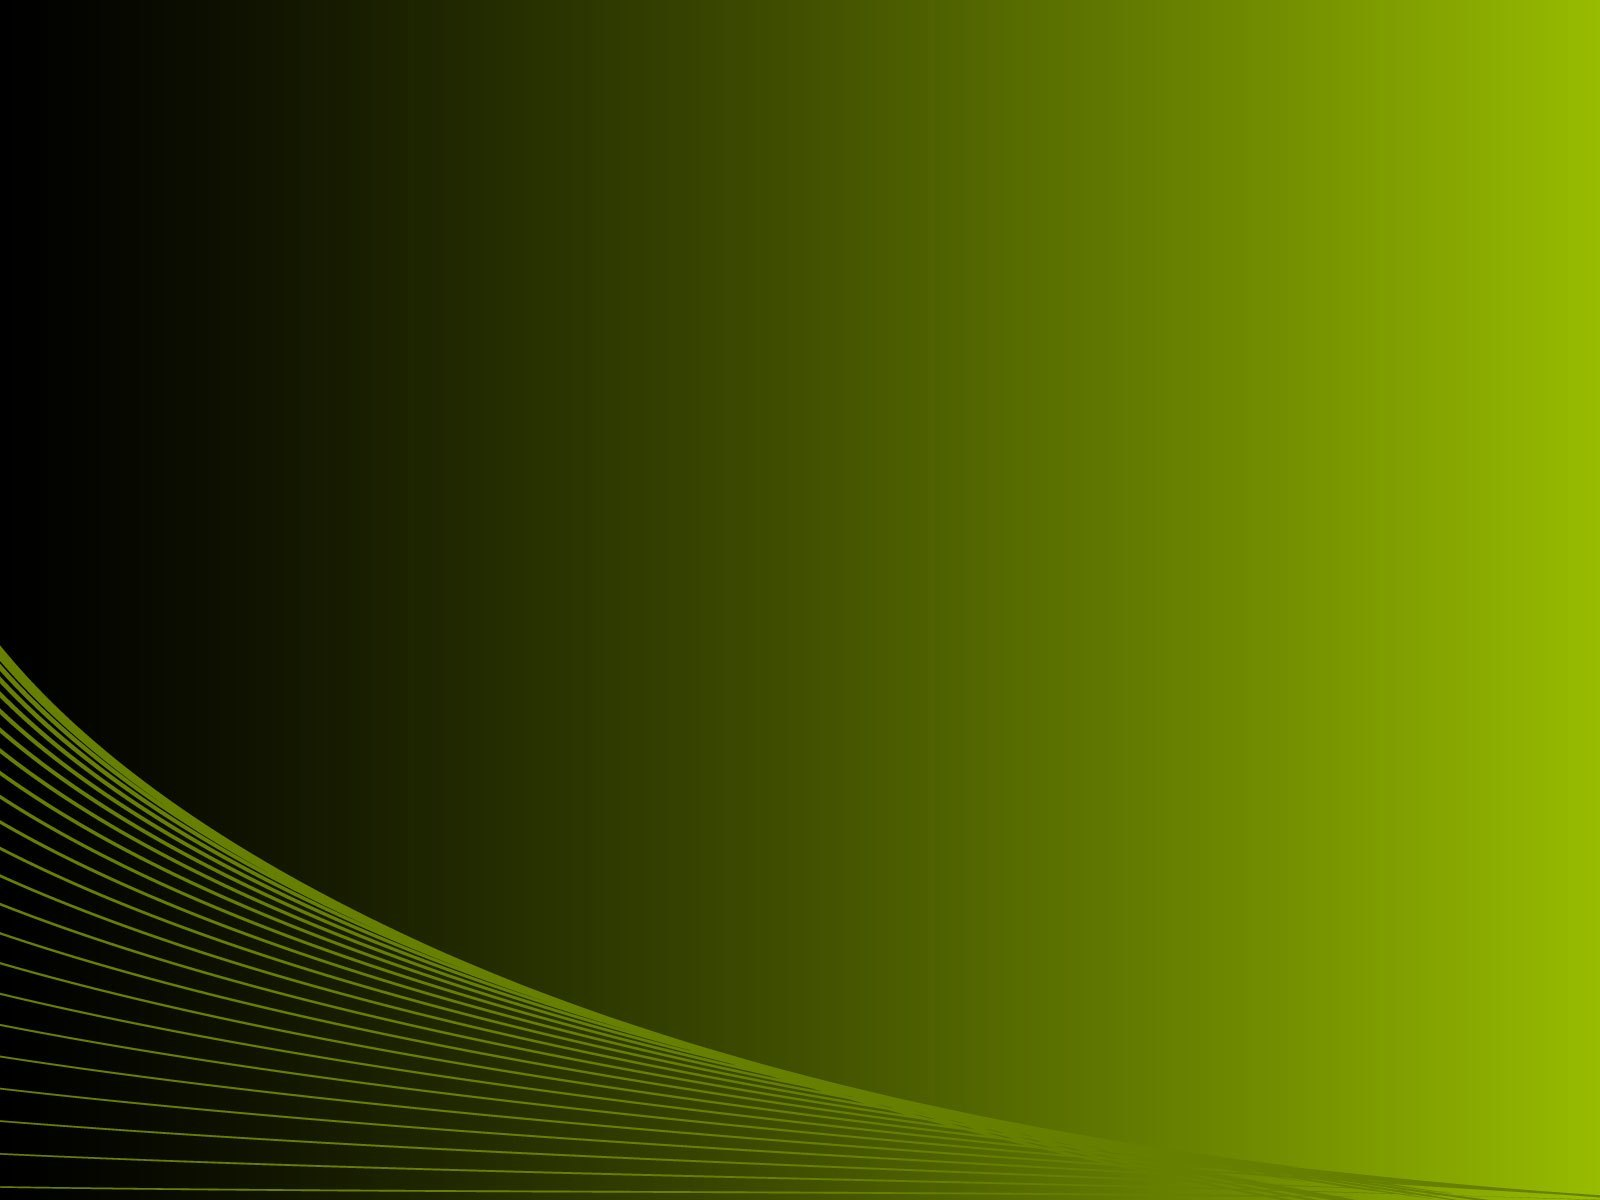 Gradient PowerPoint BackgroundsWallpapers Download   PPT 1600x1200